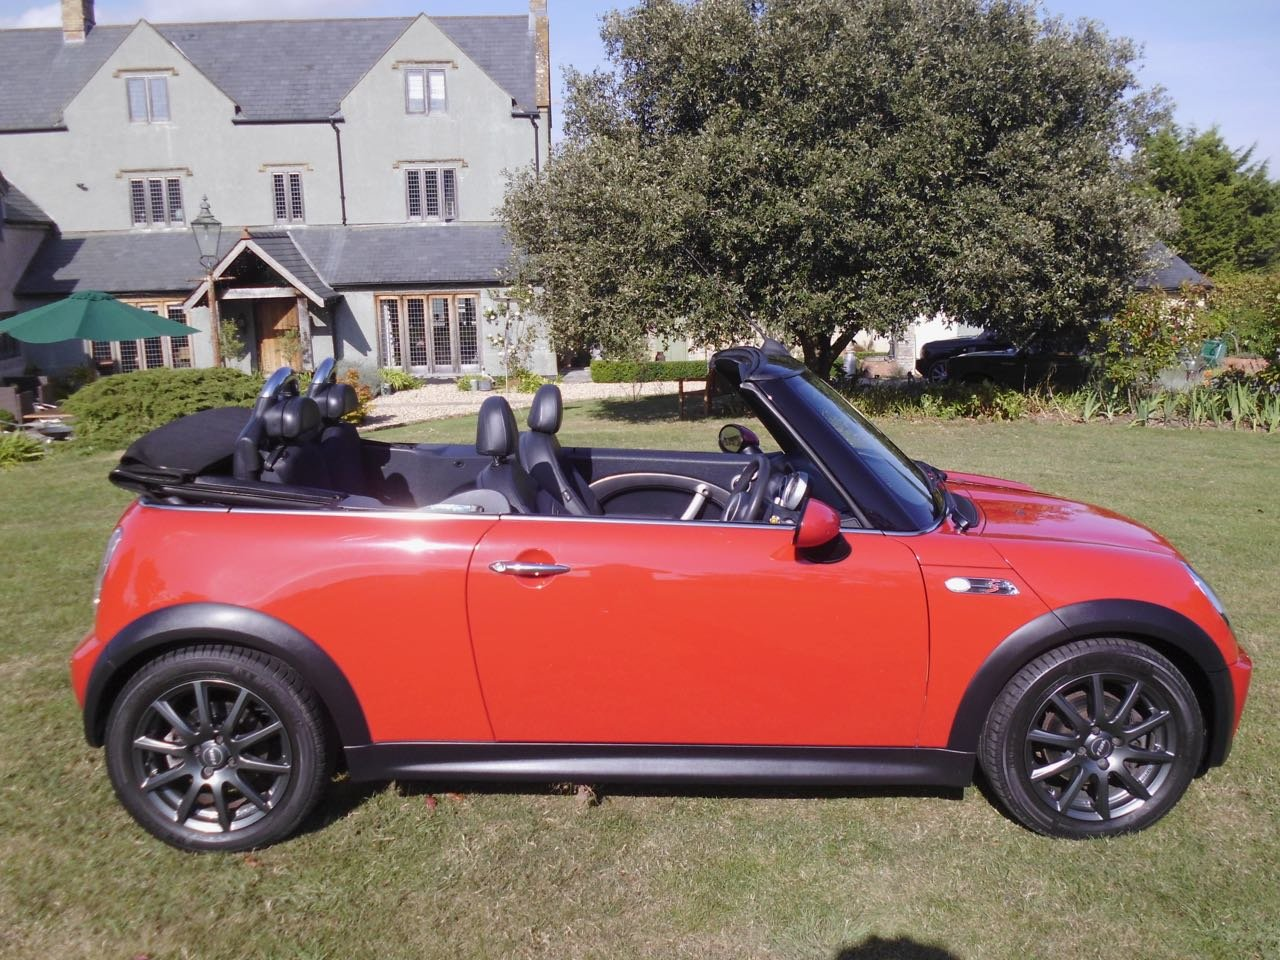 2008 Mini cooper S convertible 30,000 miles SOLD (picture 1 of 6)